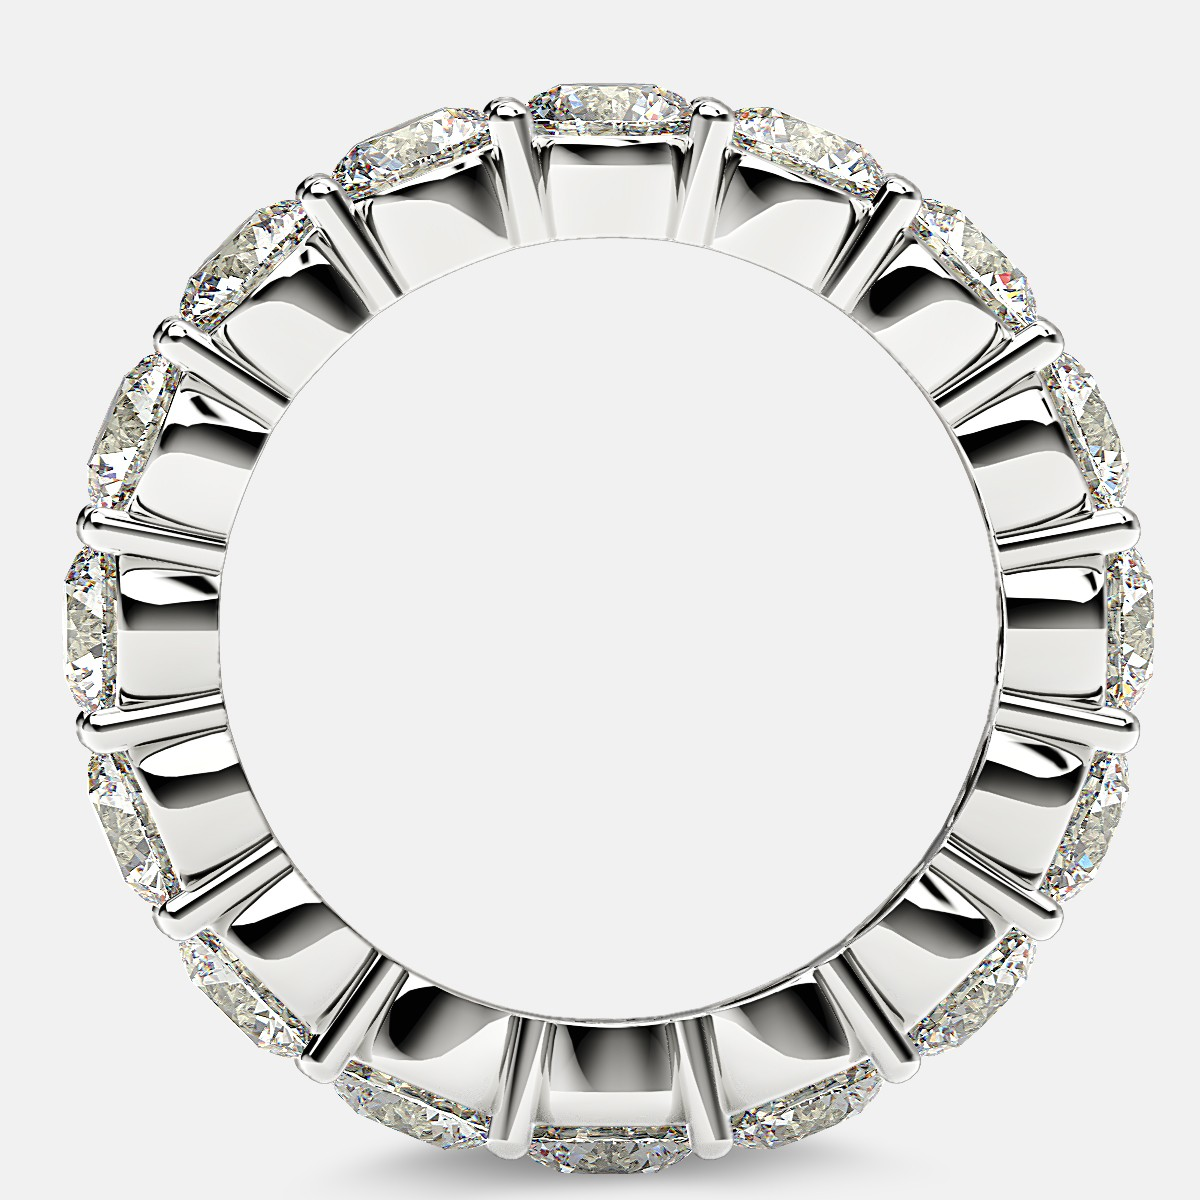 Eternity Ring with Prong Set Round Diamonds in Platinum